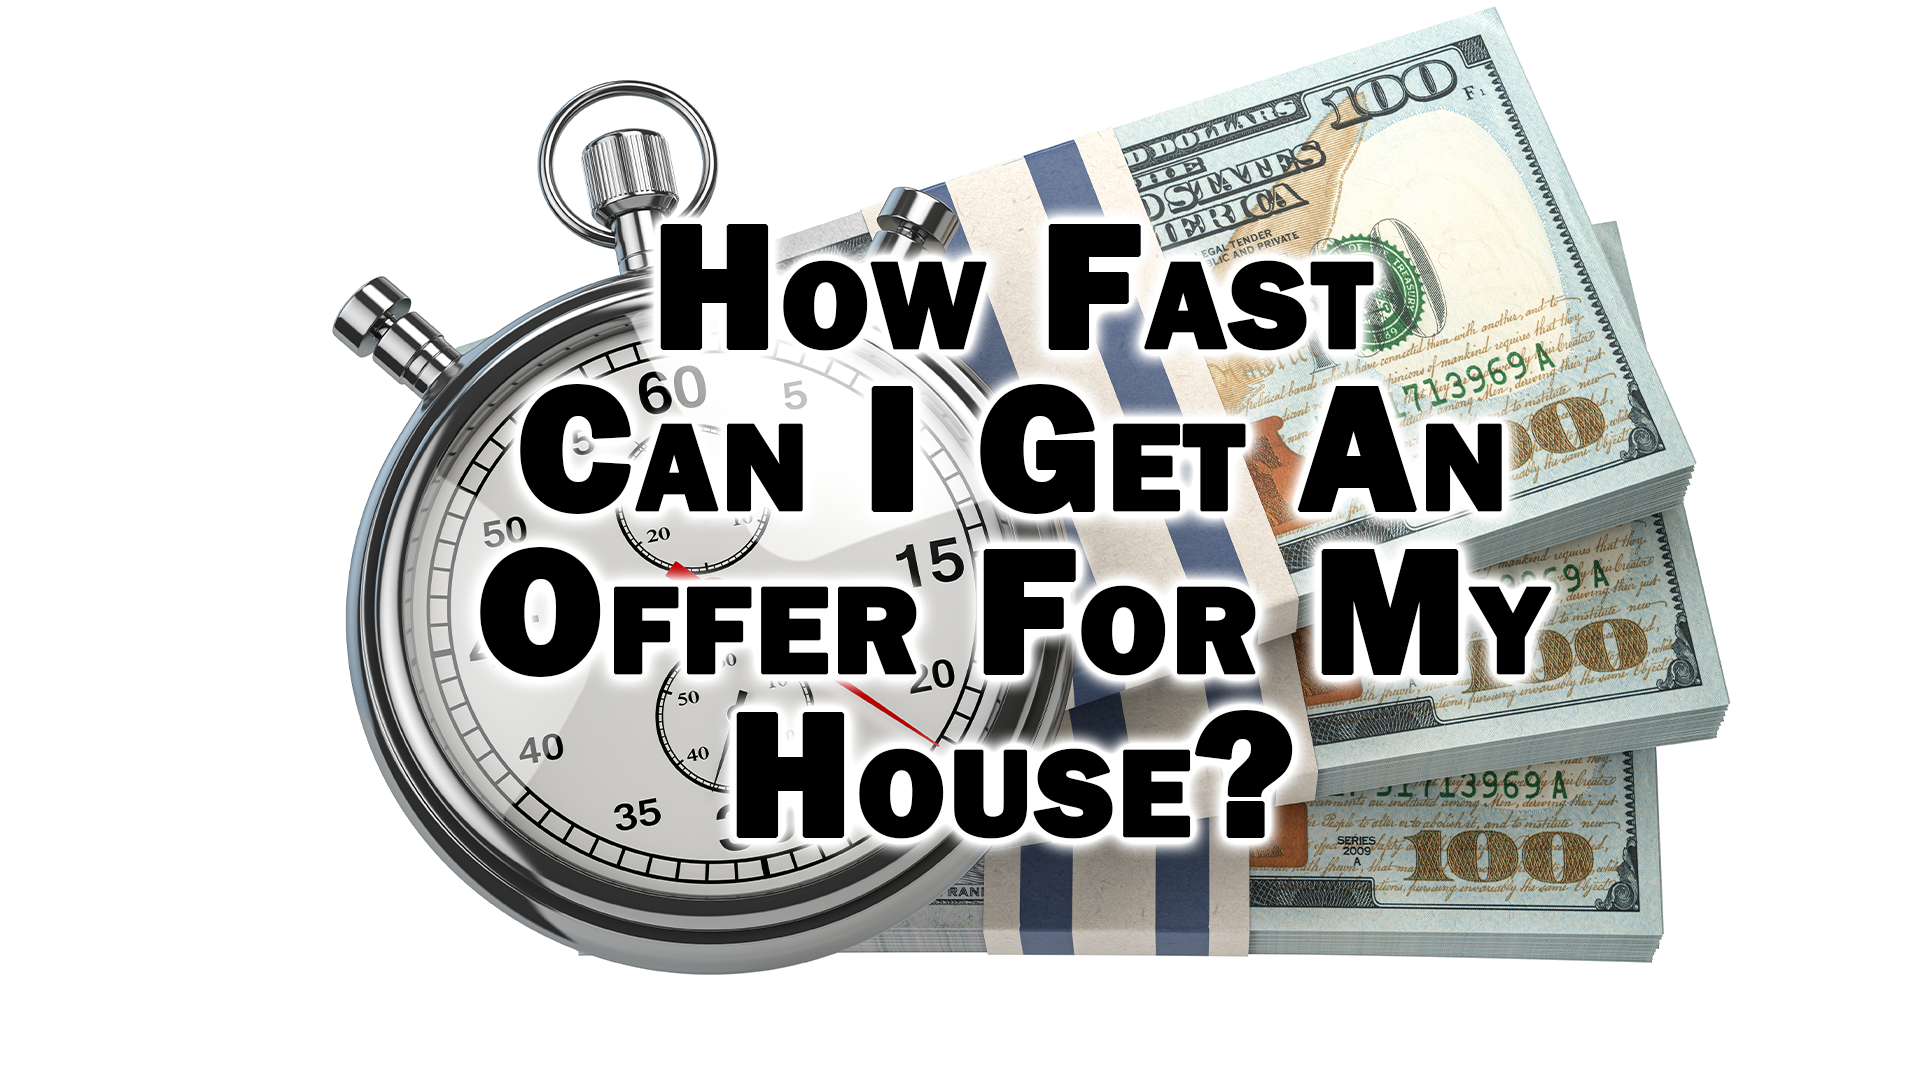 How Fast Can I Get An Offer For My House 1 How Fast Can I Get An Offer For My House